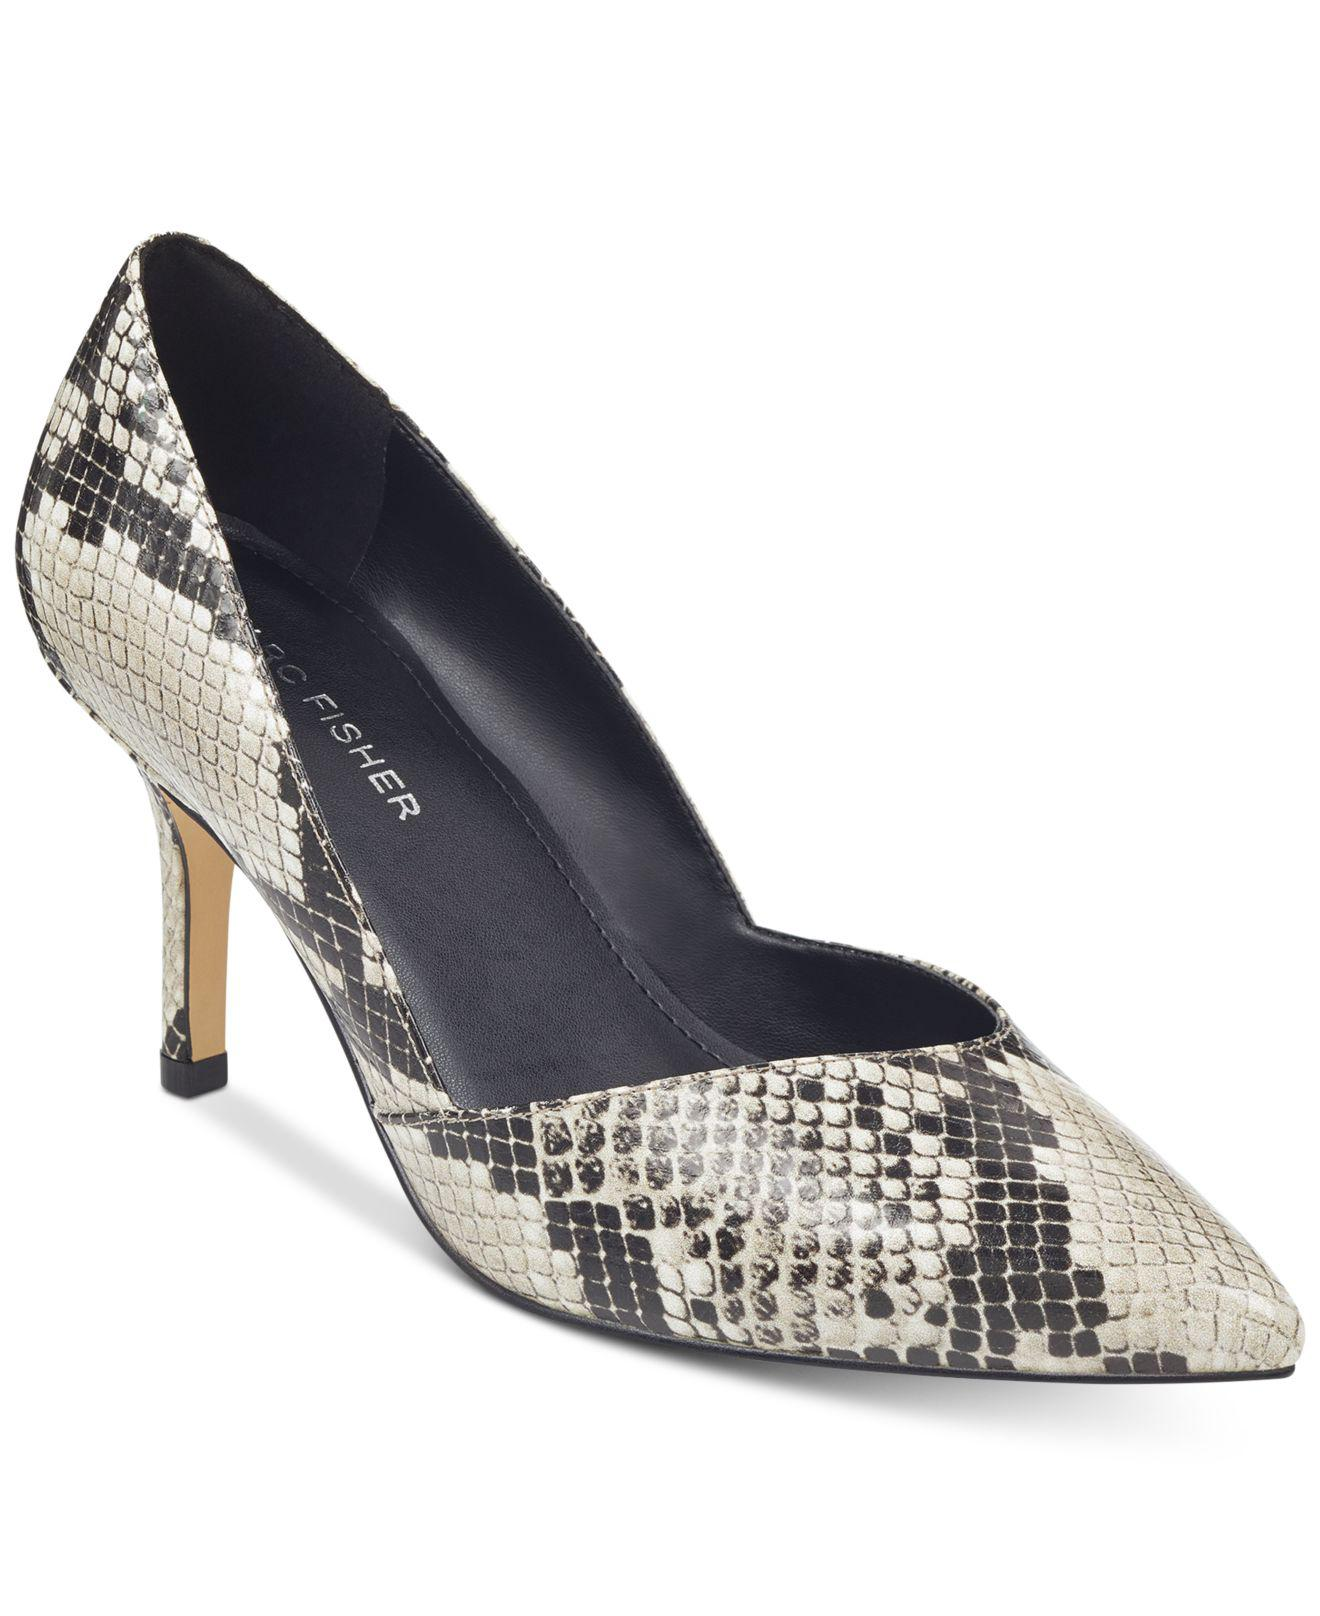 0dee2cf09886 Marc Fisher. Women s Tuscany Pumps